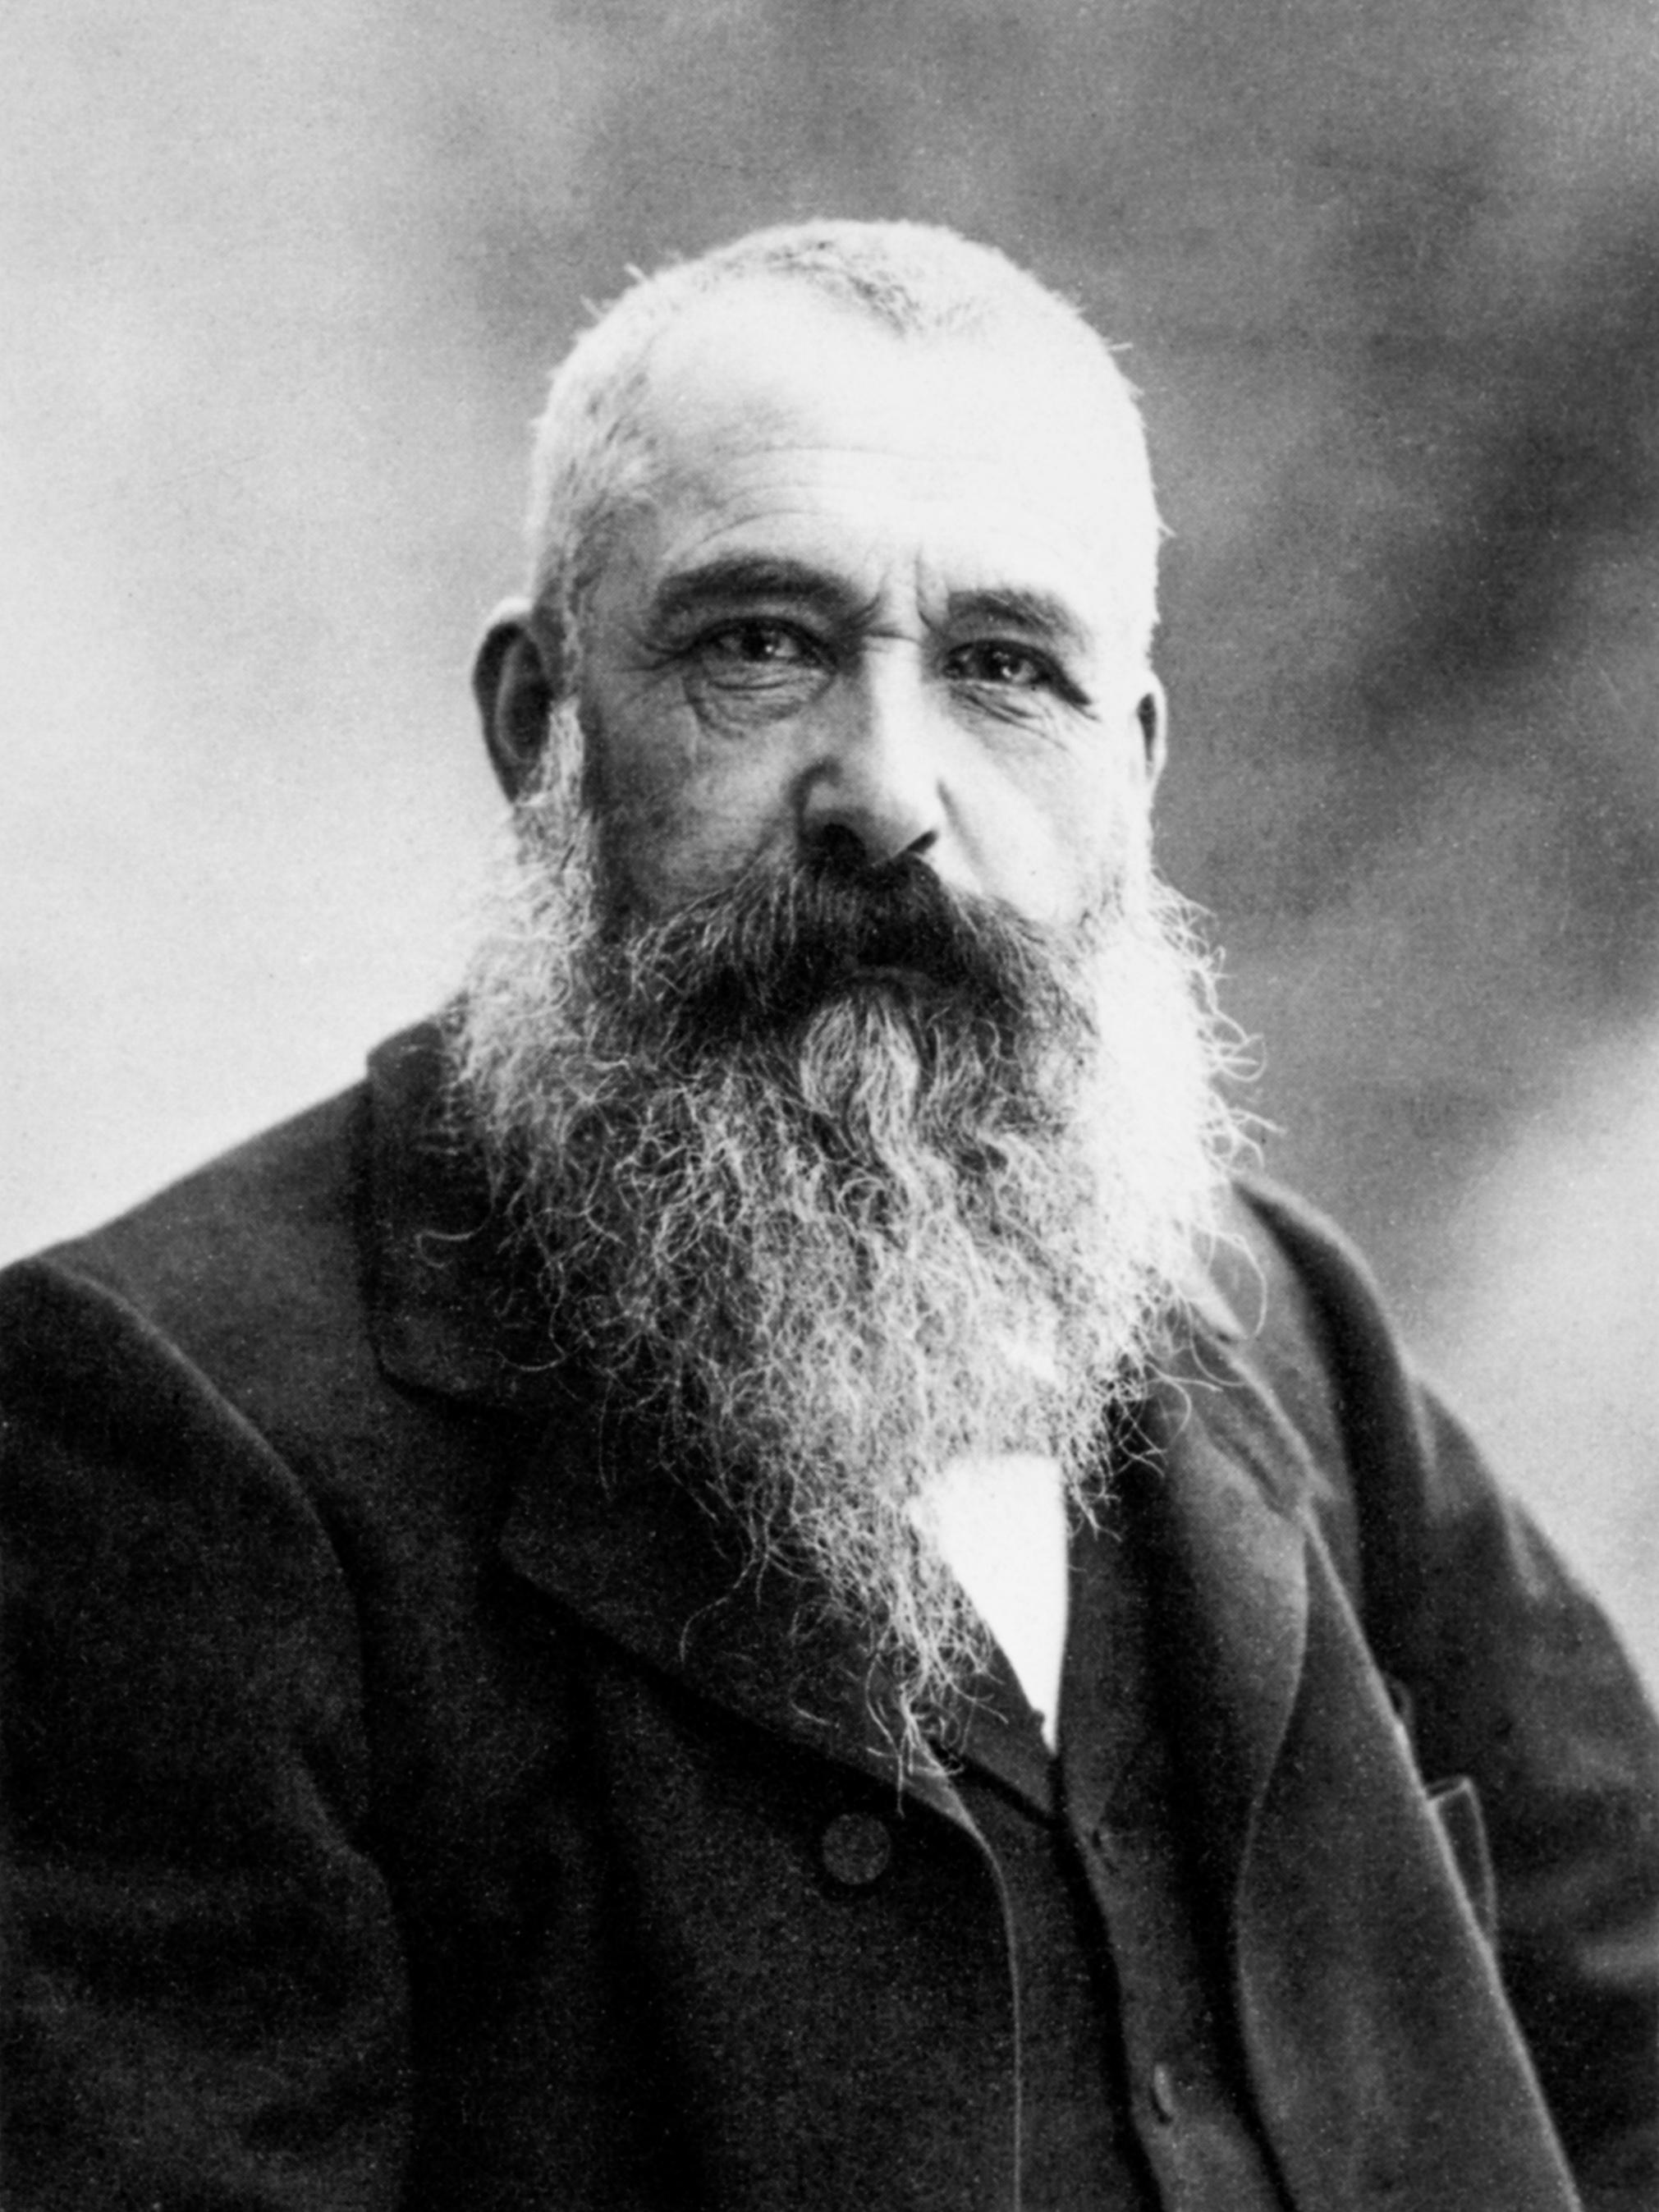 Portrait photograph of the French impressionist painter Claude Monet by Nadar, 1899